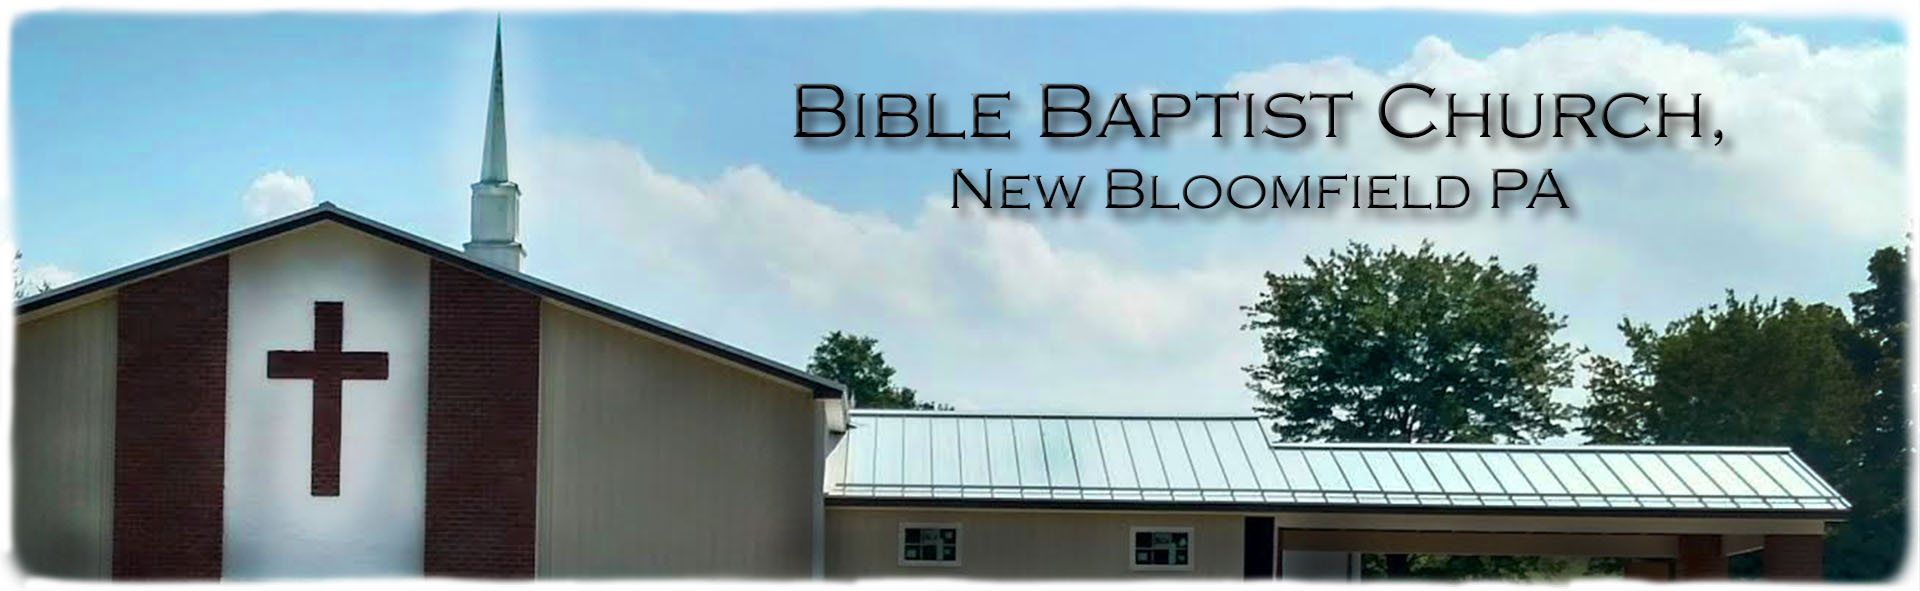 Bible Baptist Church New Bloomfield PA